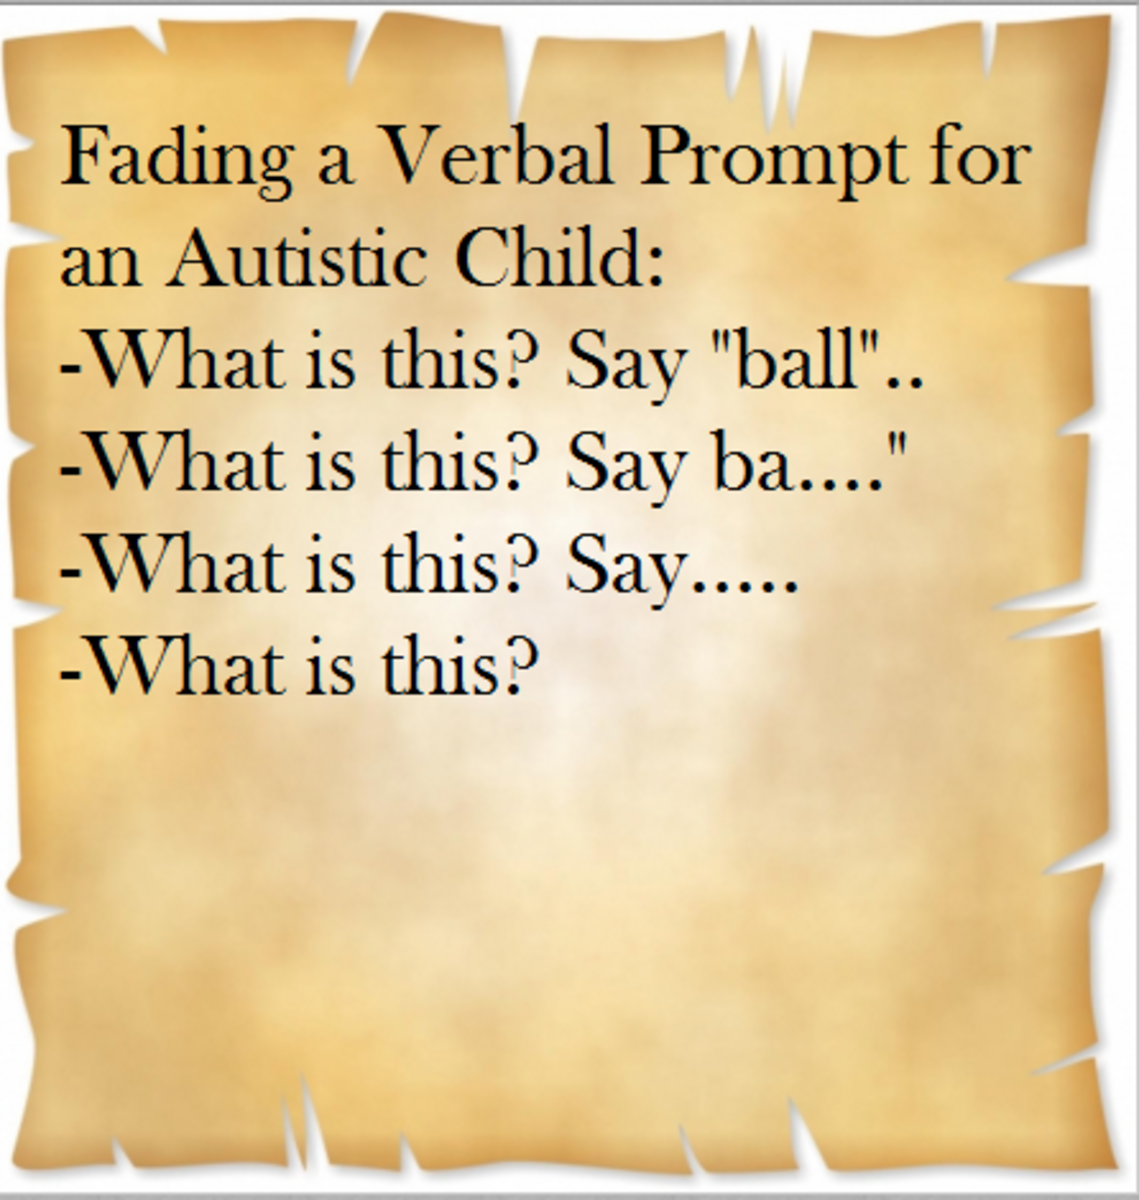 fading a verbal prompt